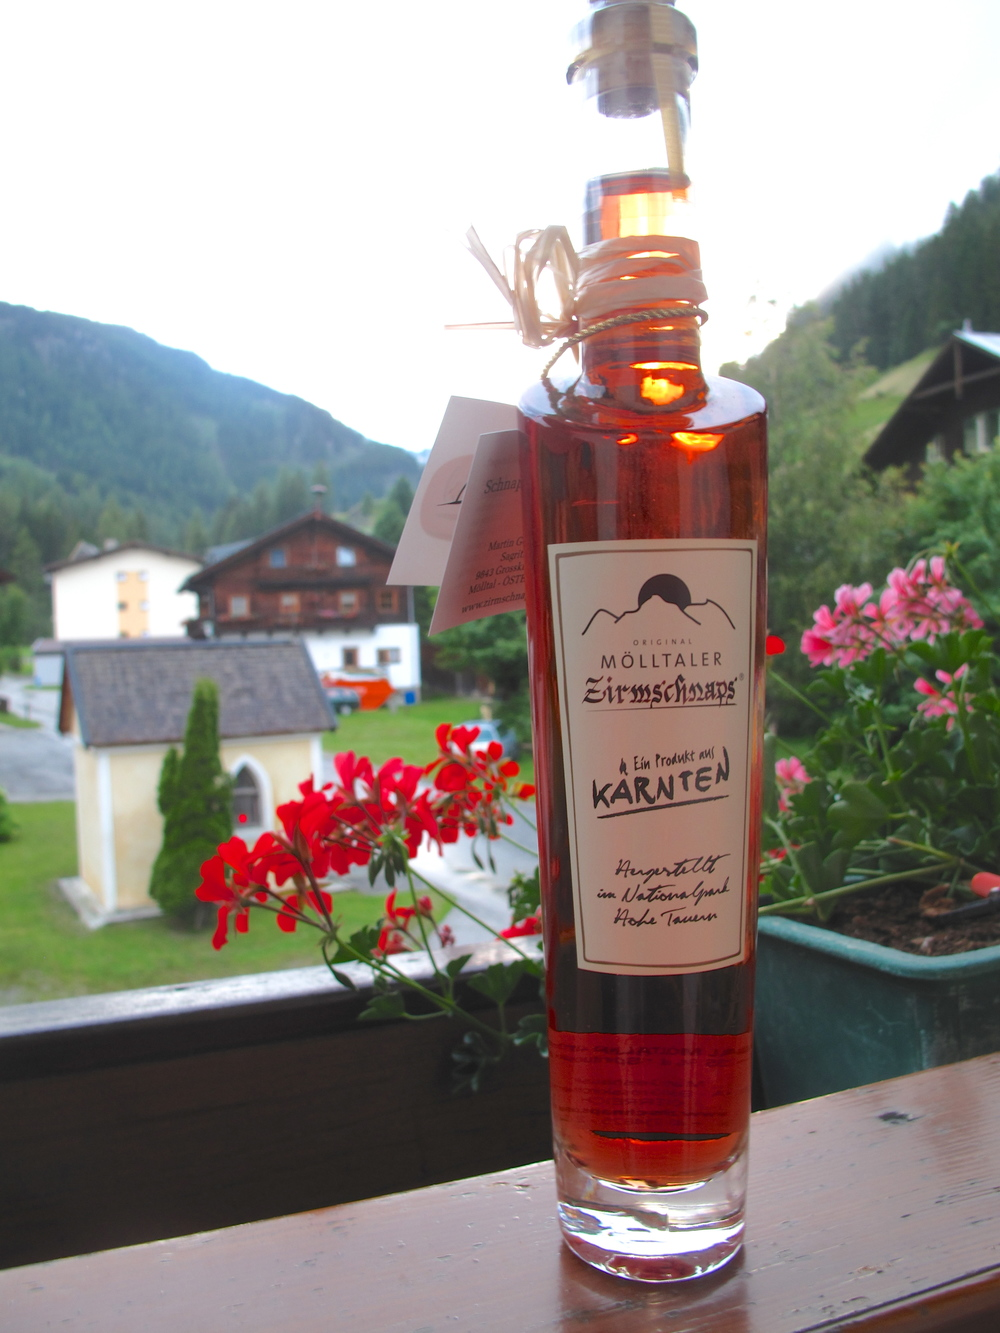 Austrian schnapps made from mountain berries.